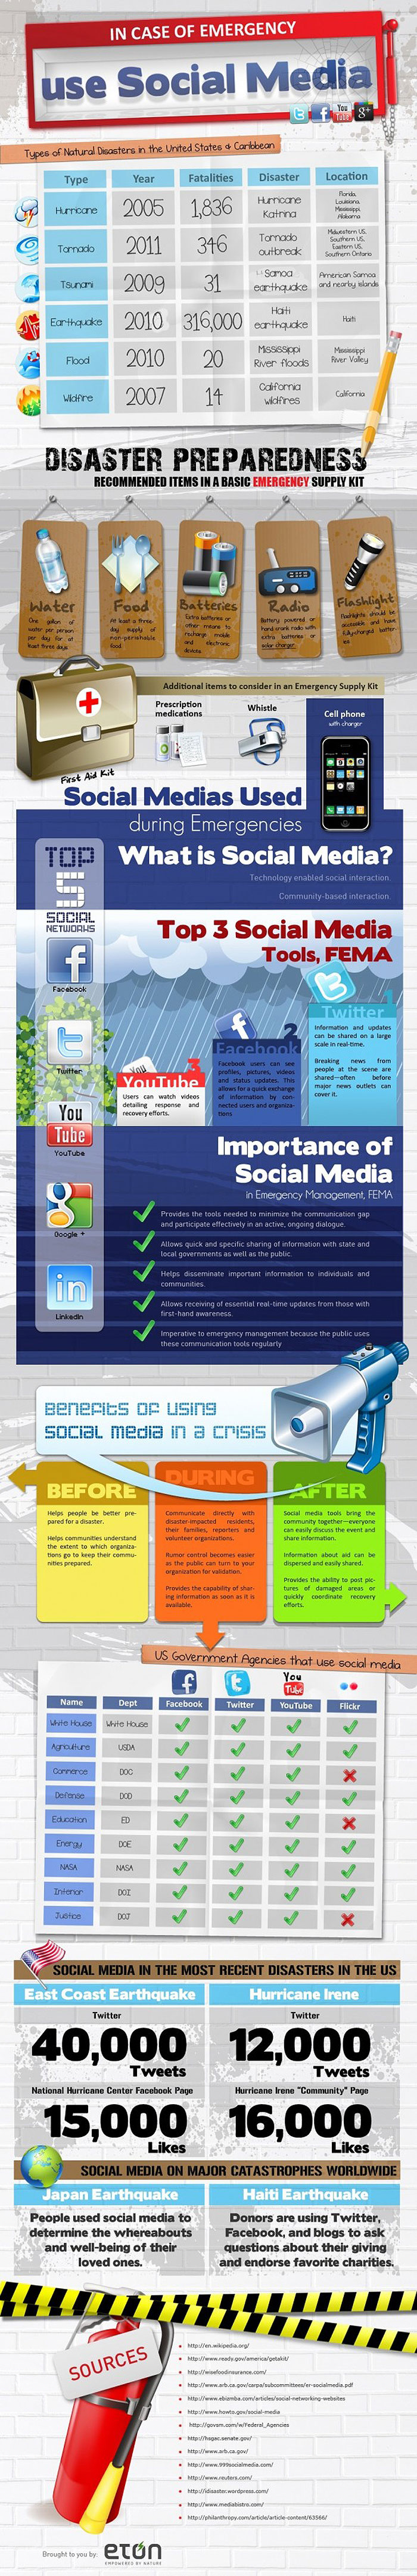 Social Media Usage During Disasters Statistics Infographic